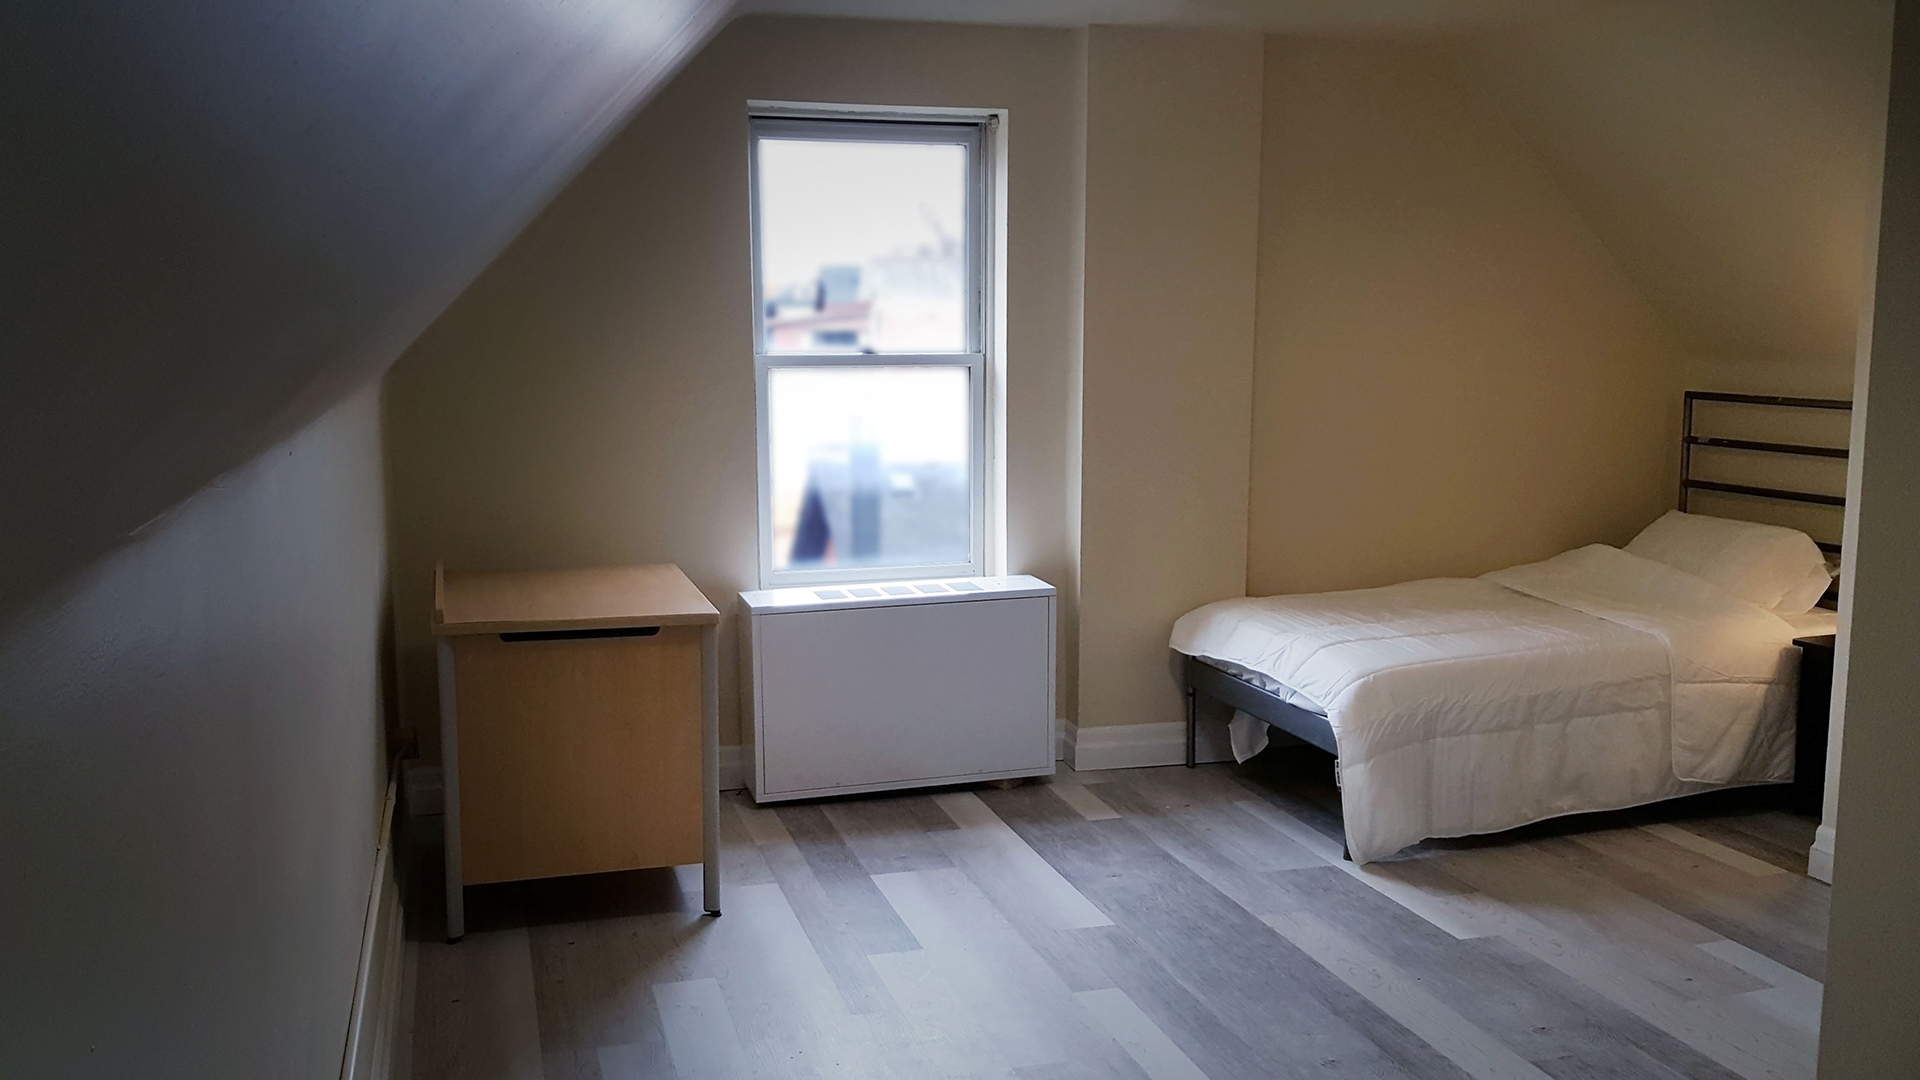 RENOVATED ROOM AT BAILEY HOUSE